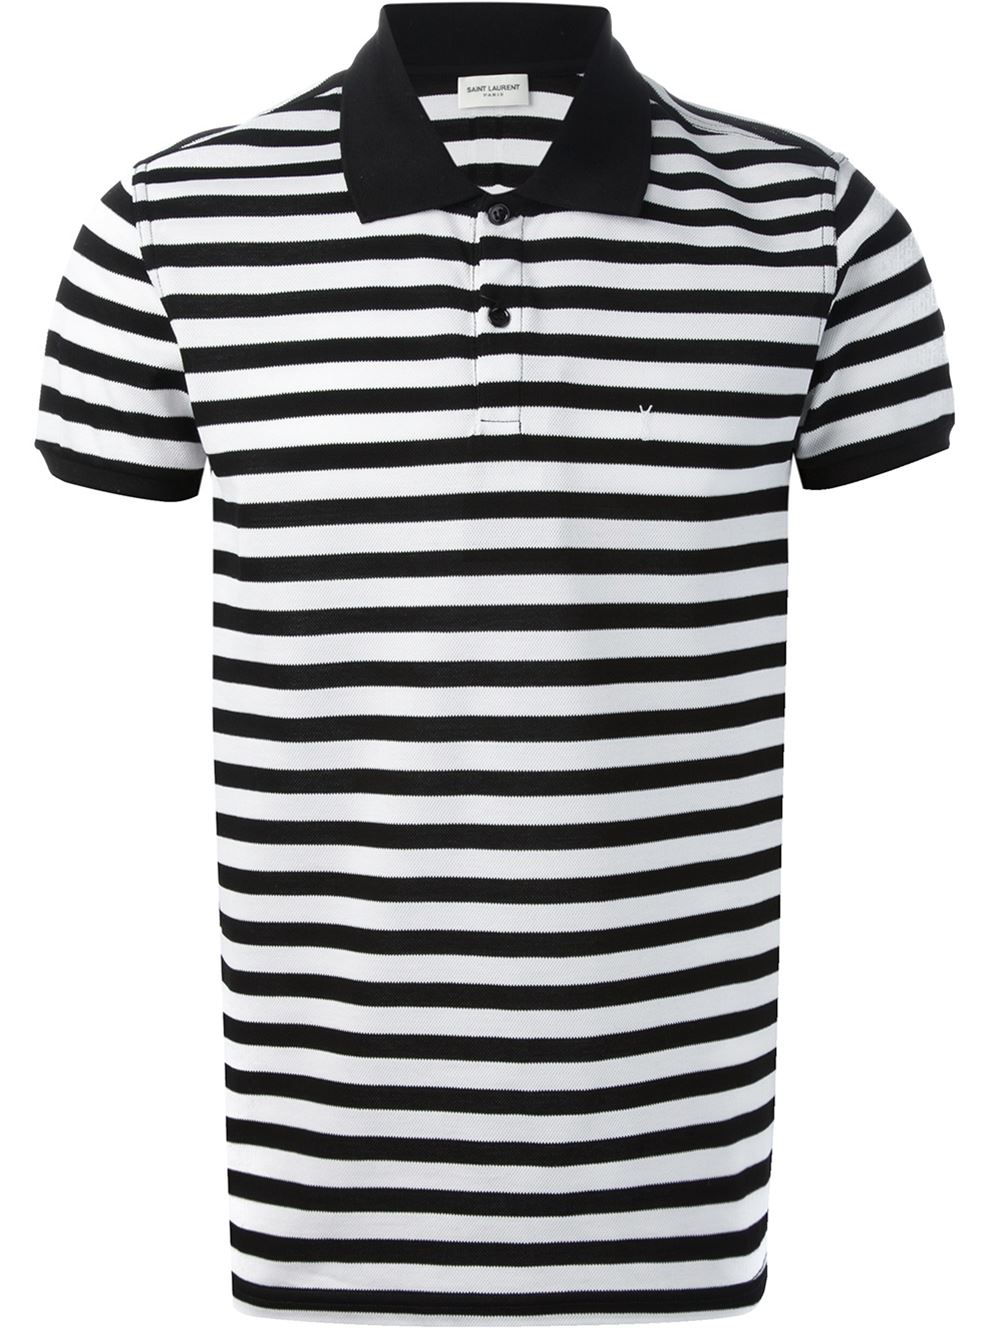 Find striped polo shirts at ShopStyle. Shop the latest collection of striped polo shirts from the most popular stores - all in one place.